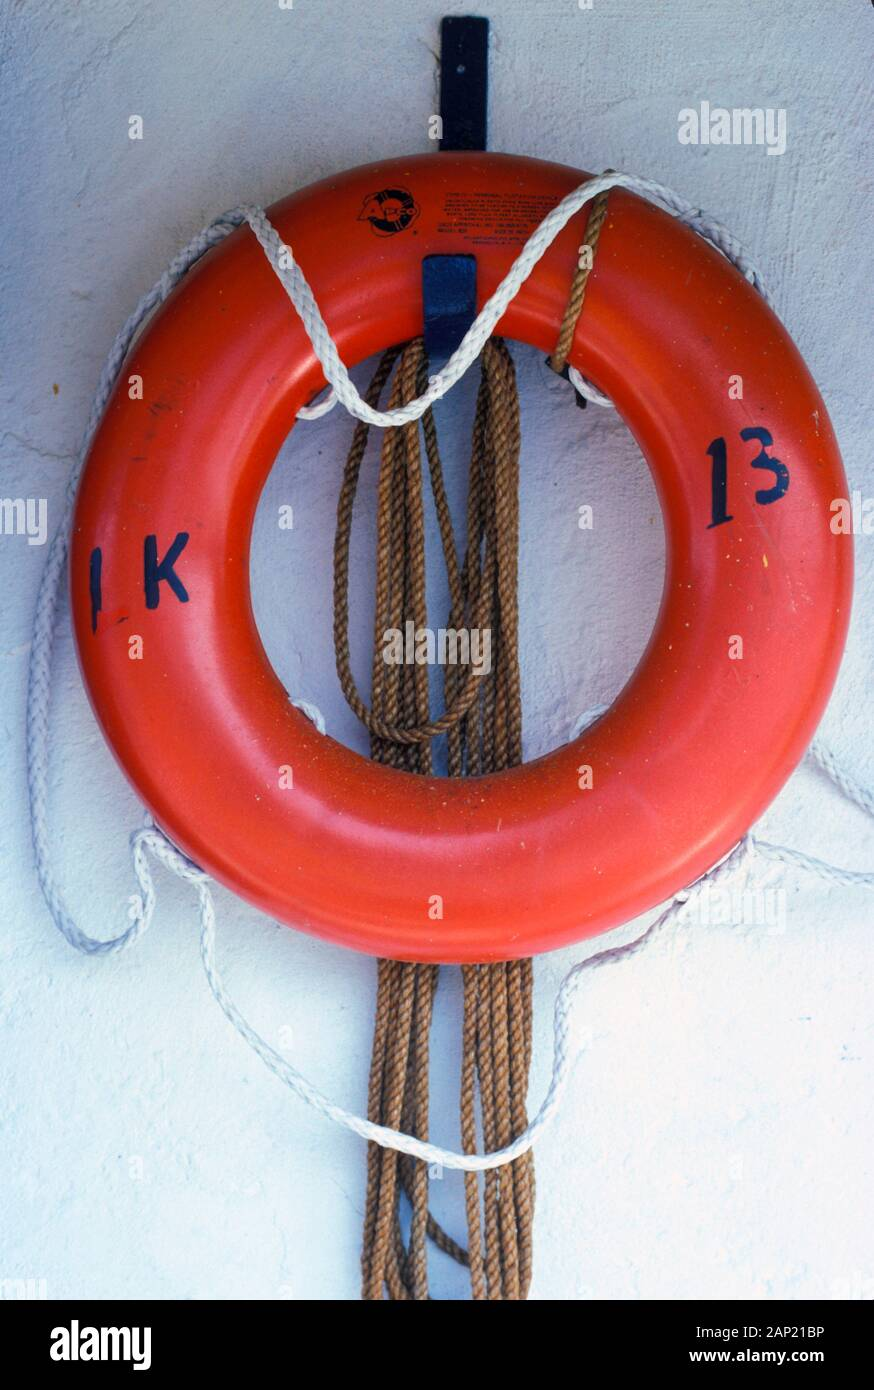 Orange life preserver and rope against a white wall Stock Photo